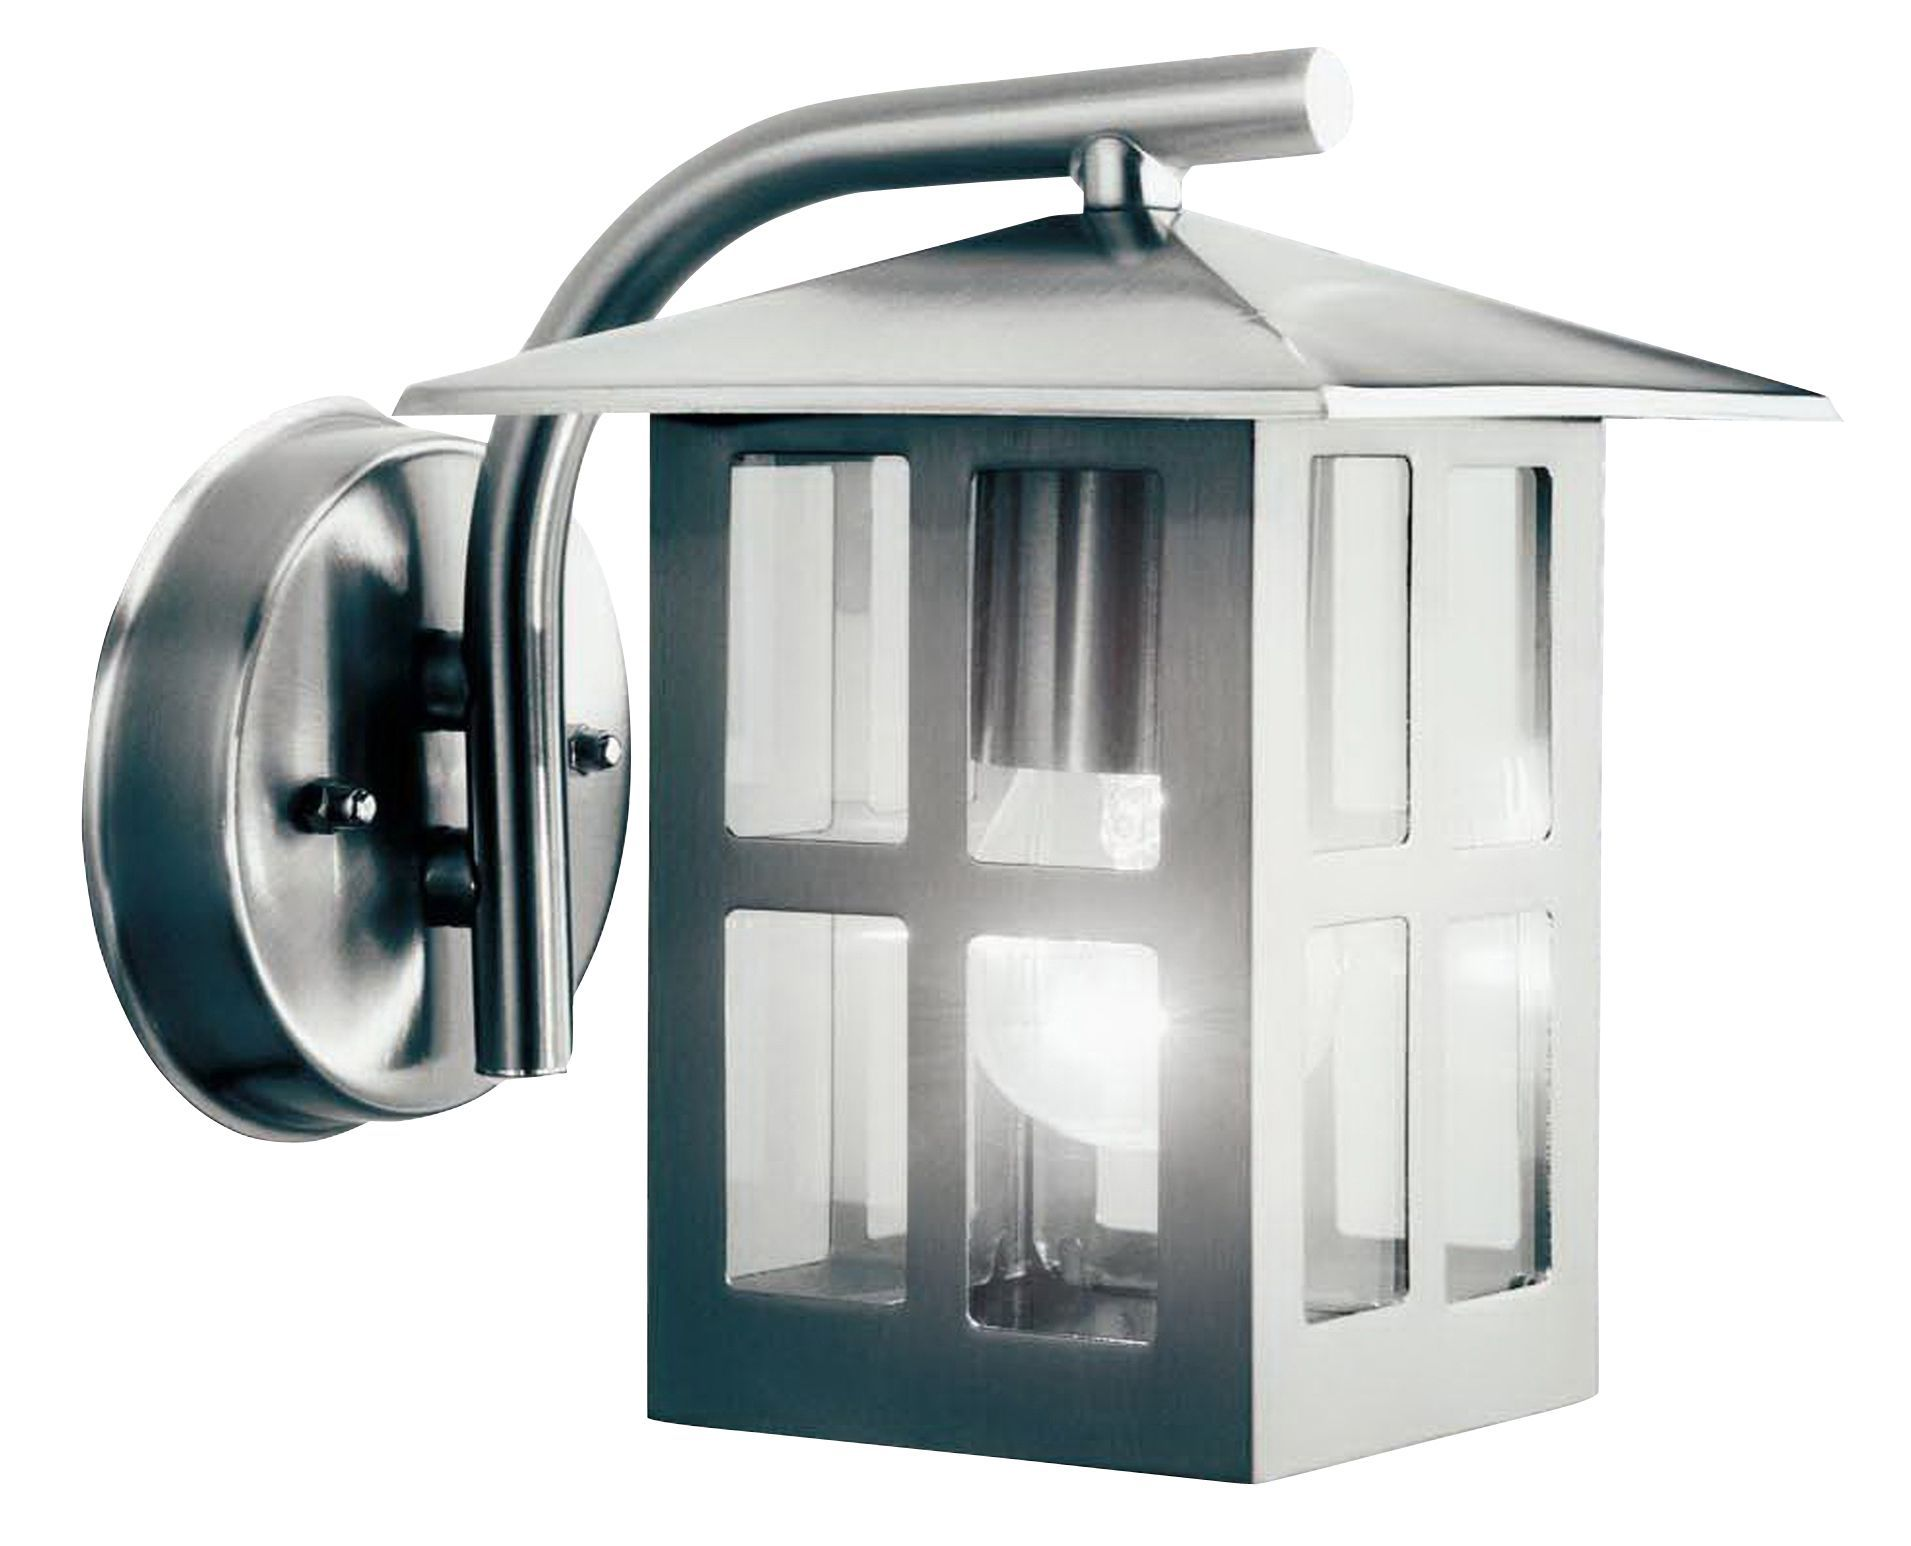 Wall Lamps External : Mains Powered External WALL LANTERN Glass Stainless Steel Porch Garden Lighting eBay